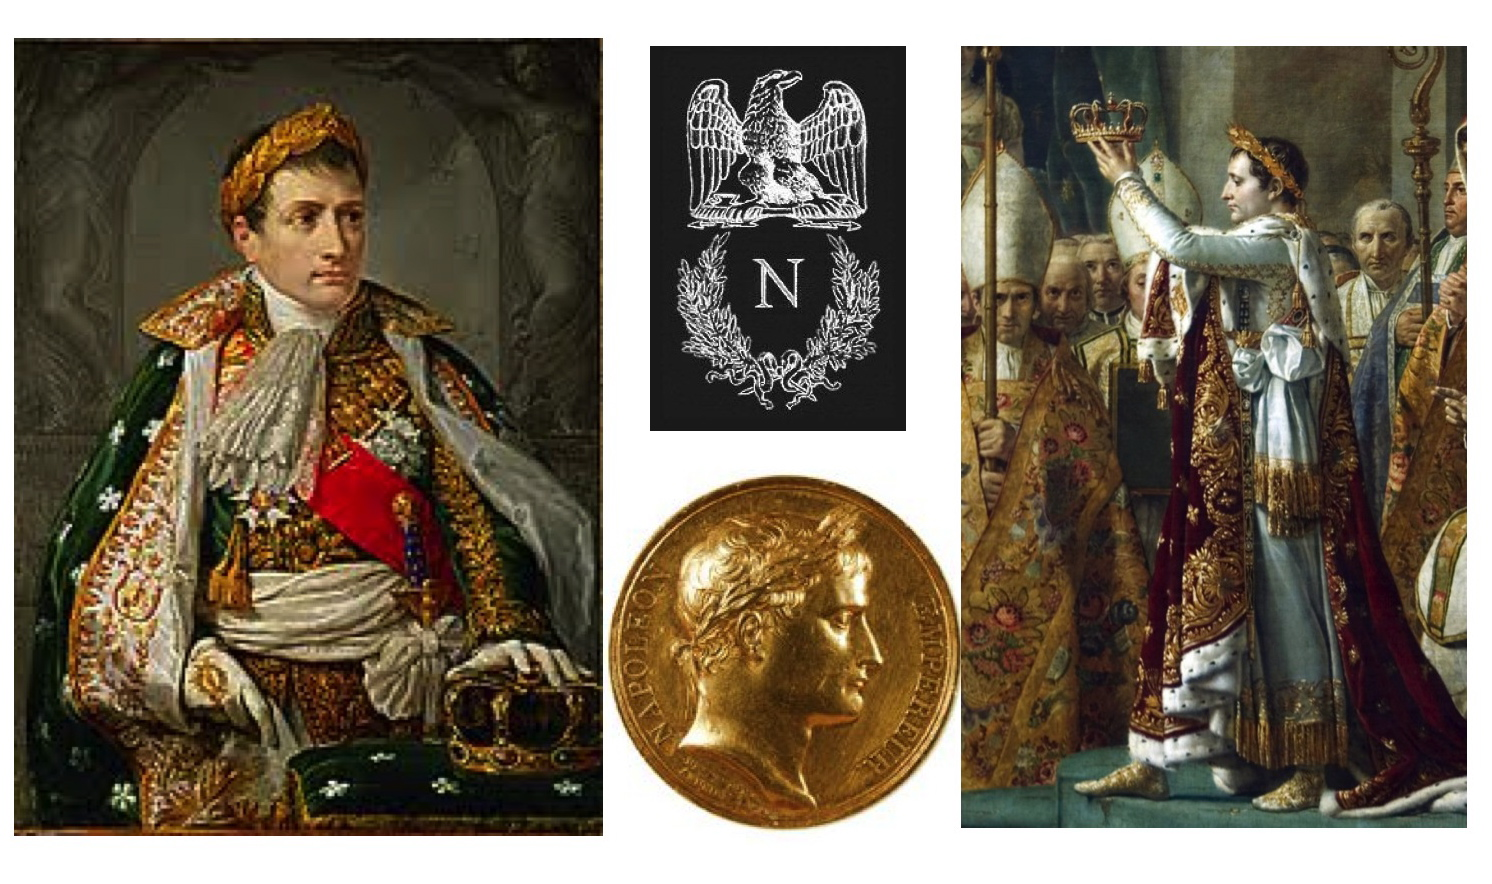 the achievements of napoleon bonaparte and julius caesar About napoleon the definitive biography of the great soldier-statesman by the new york times bestselling author of the storm of war austerlitz, borodino, waterloo: his battles are among the greatest in history, but napoleon bonaparte was far more than a military genius and astute leader of men.